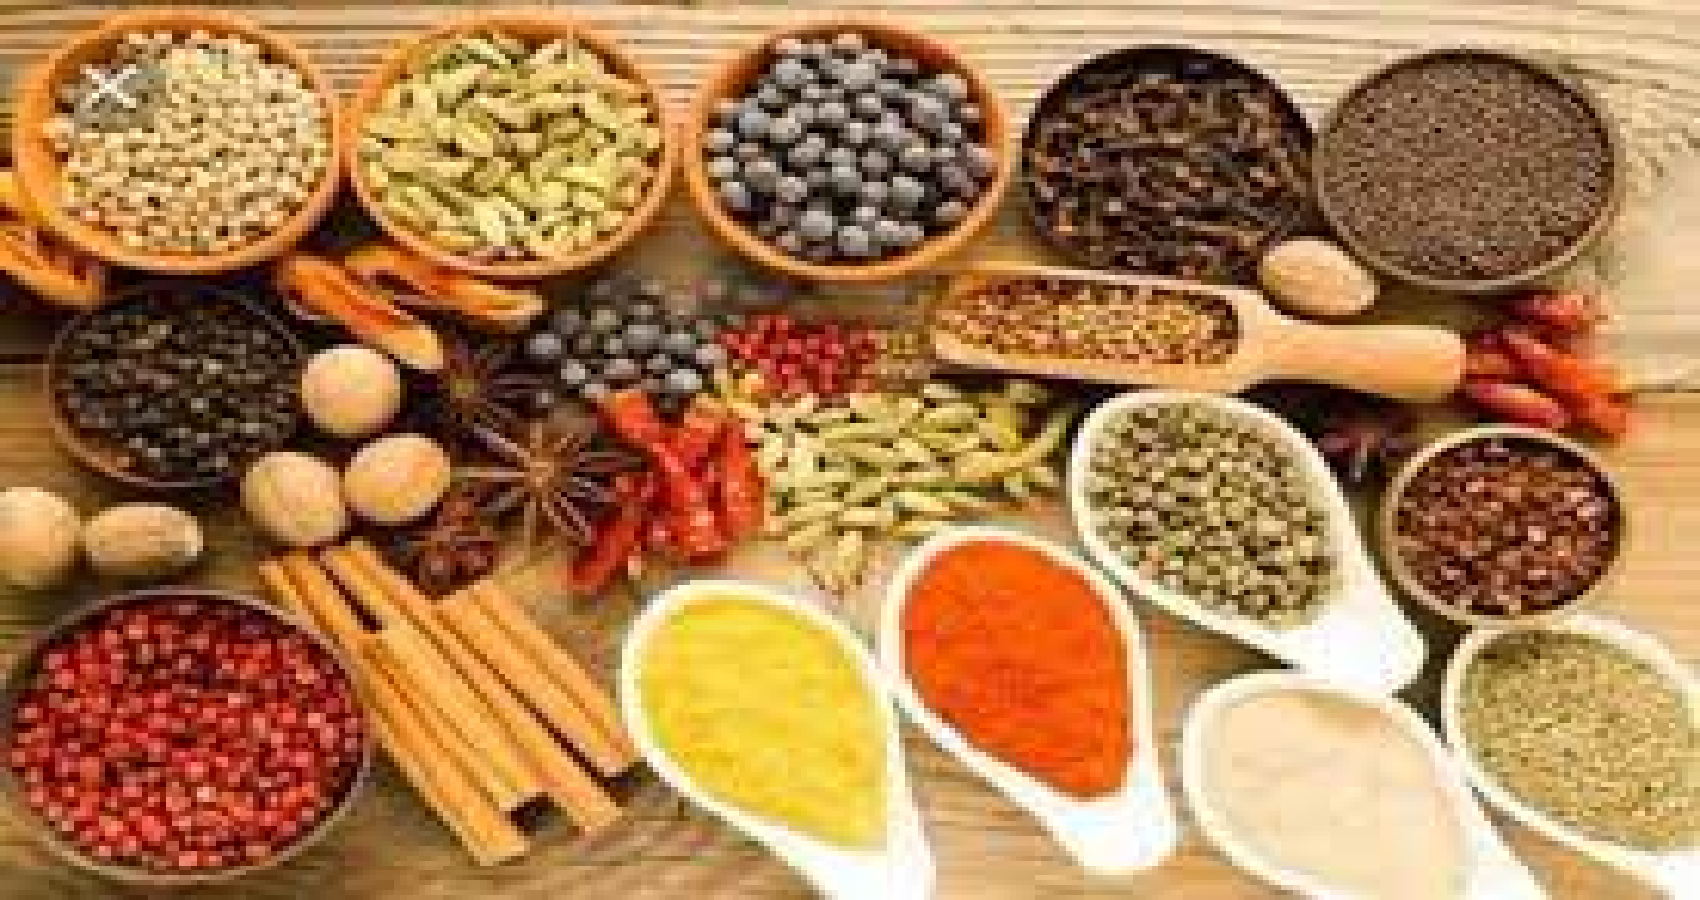 Understanding The Importance Of Salt, Oil, Spices And Sugar